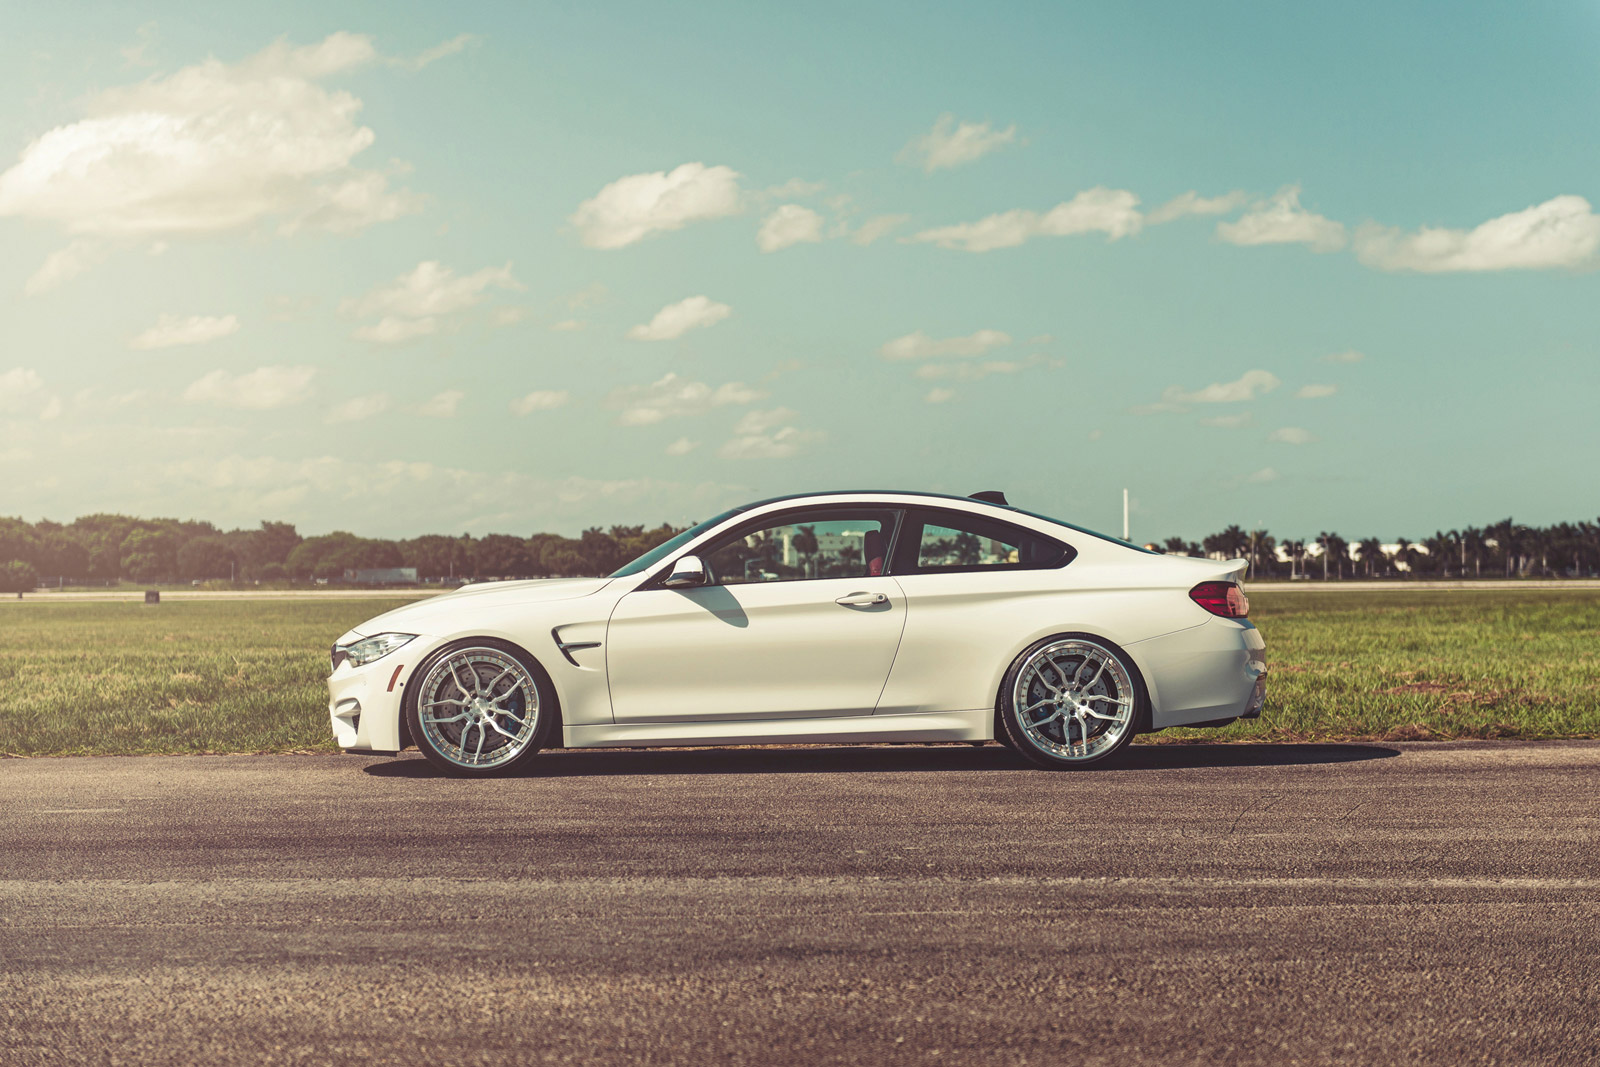 The Perfect Match Bmw M4 And Adv 1 Wheels Autoevolution